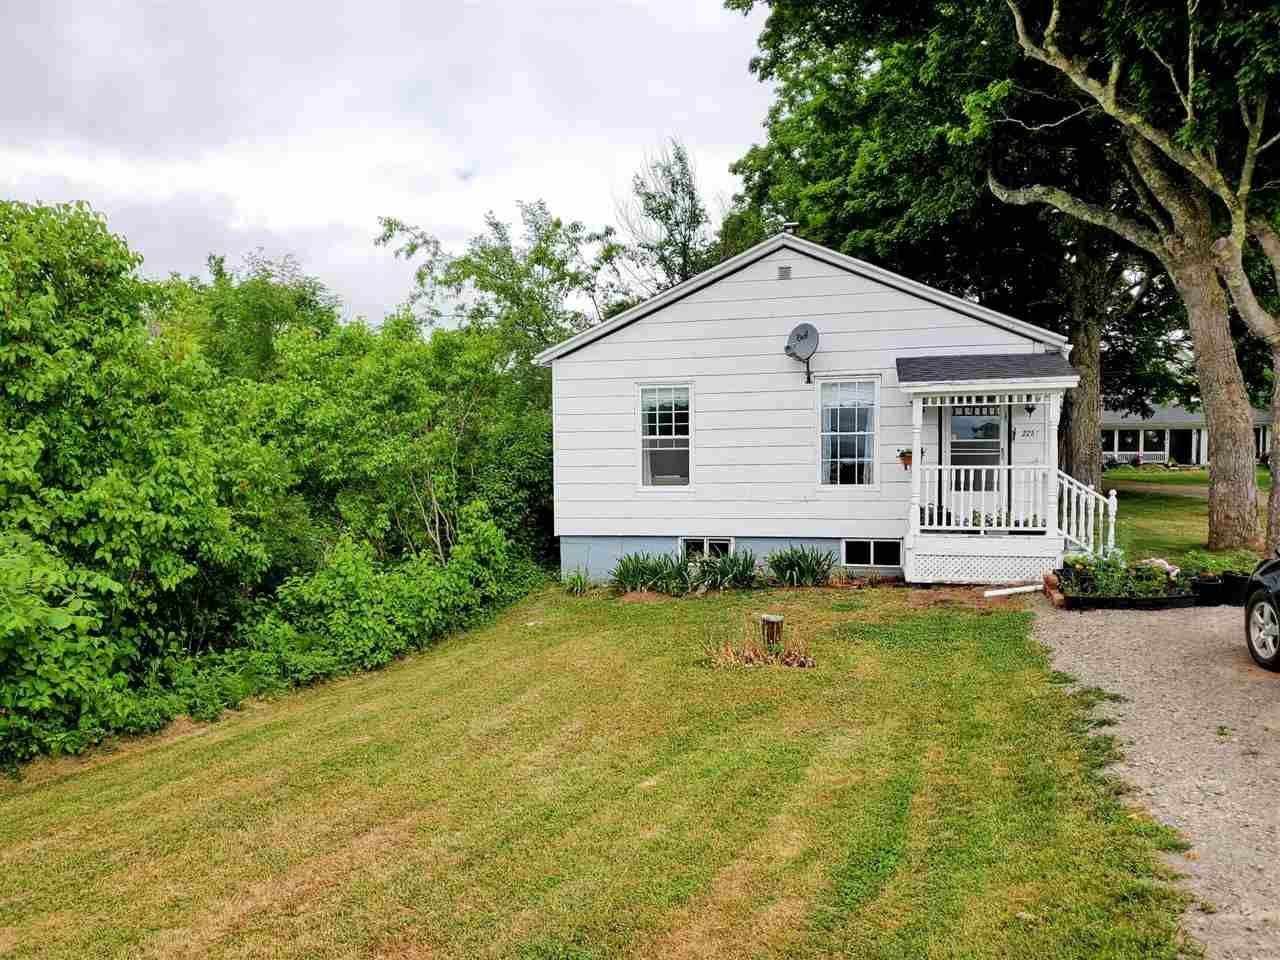 Main Photo: 2257 Highway 1 in Auburn: 404-Kings County Residential for sale (Annapolis Valley)  : MLS®# 202011078